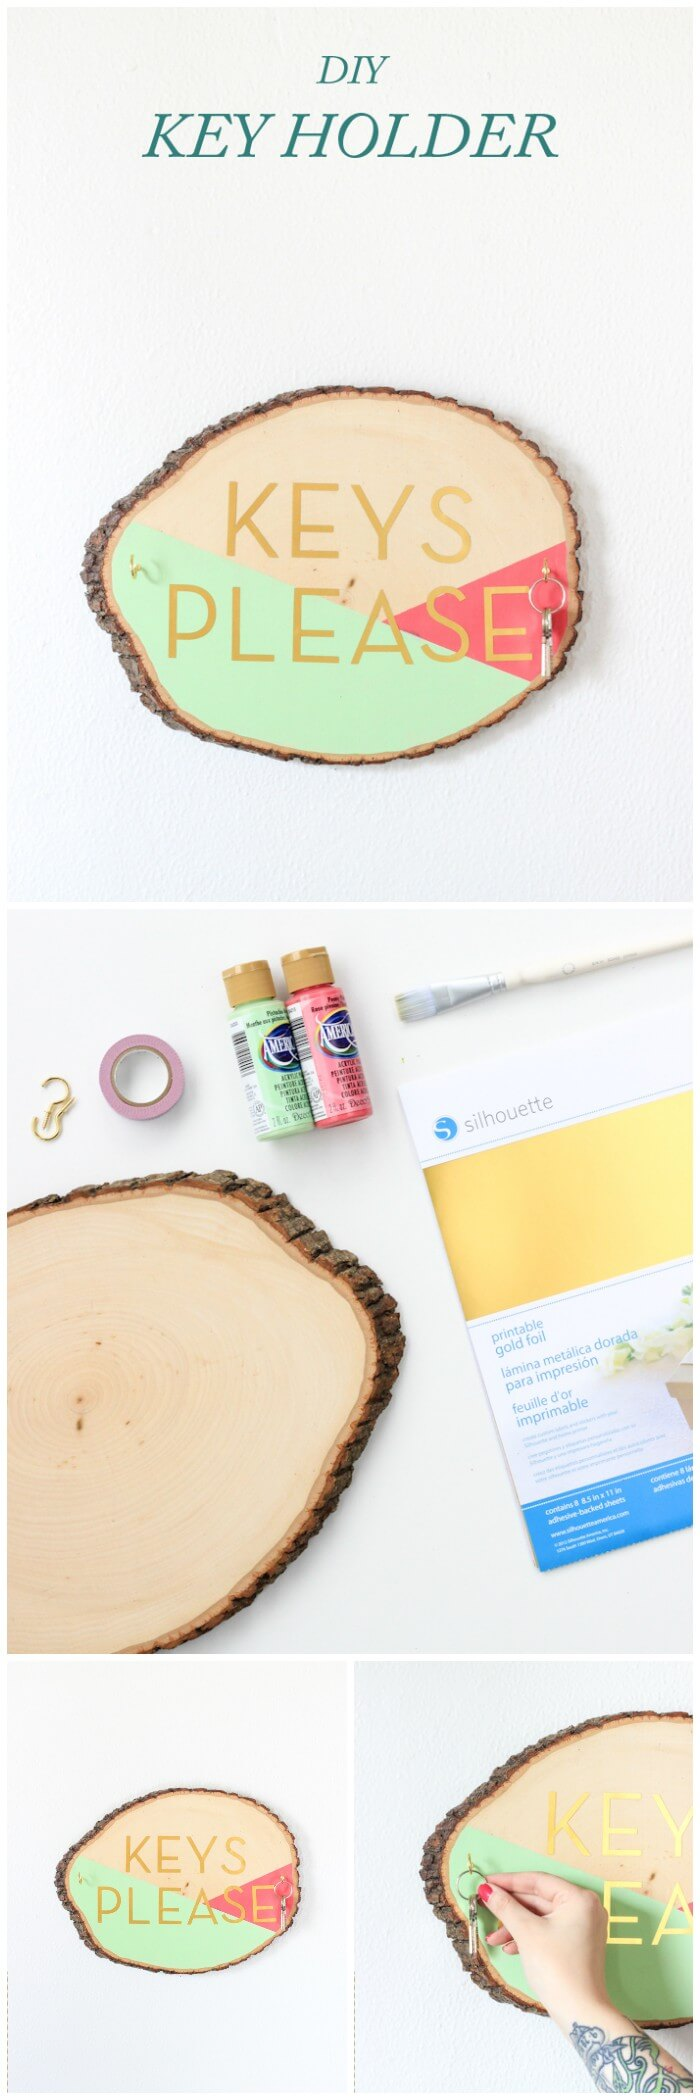 Key holder | DIY Wood Tree Log Decor Ideas - FarmFoodFamily.com